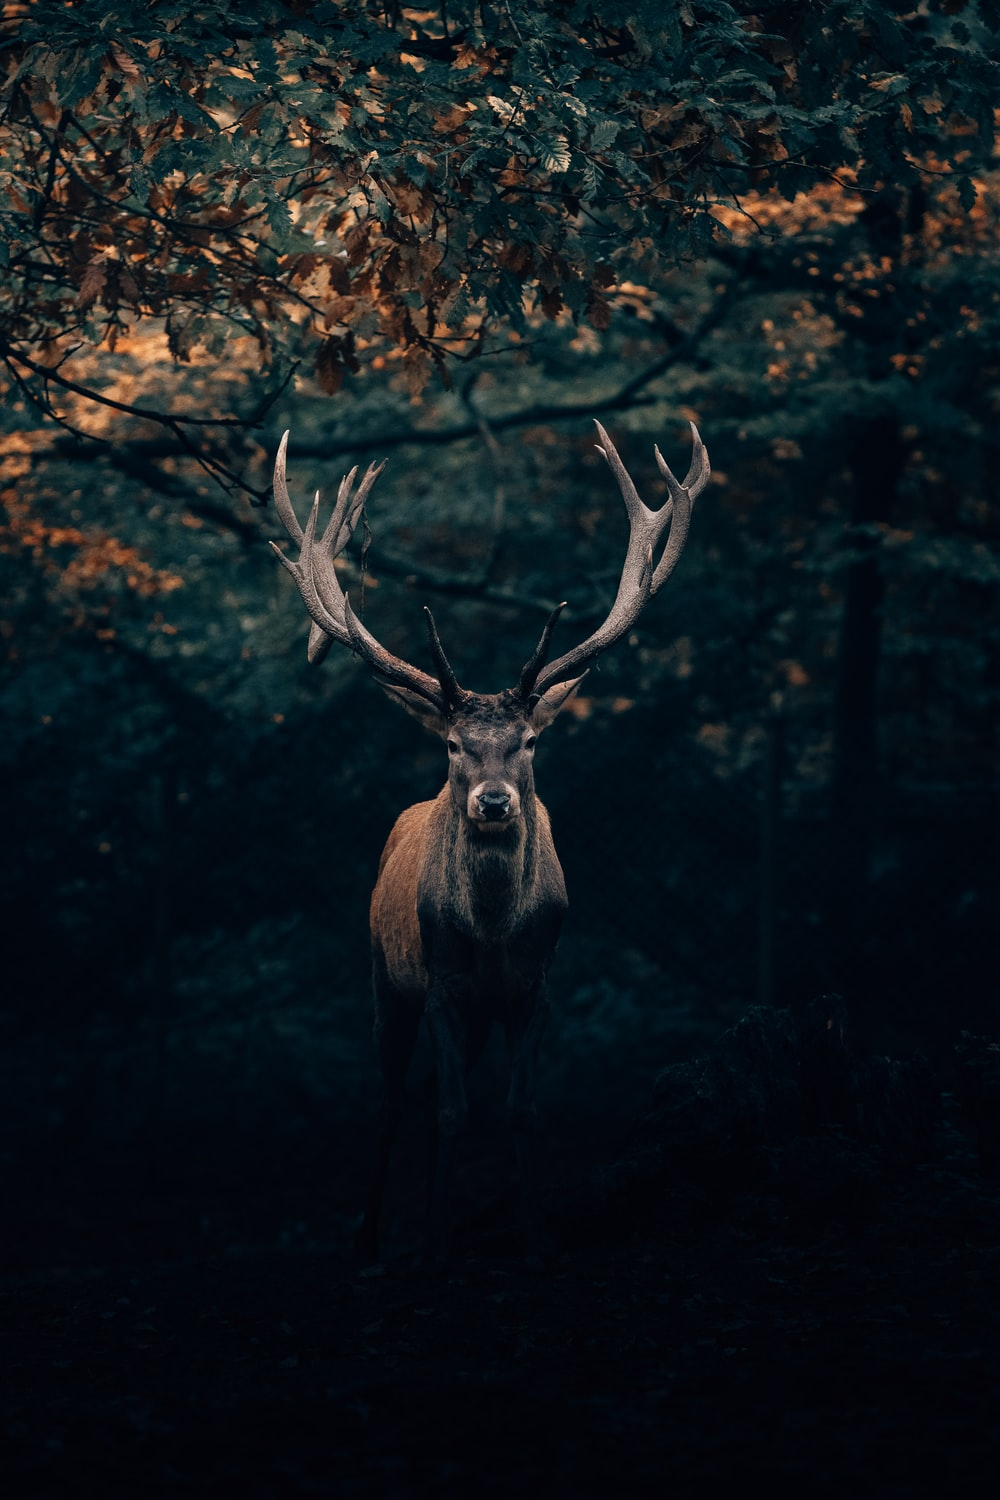 100+ Deer Pictures | Download Free Images & Stock Photos on